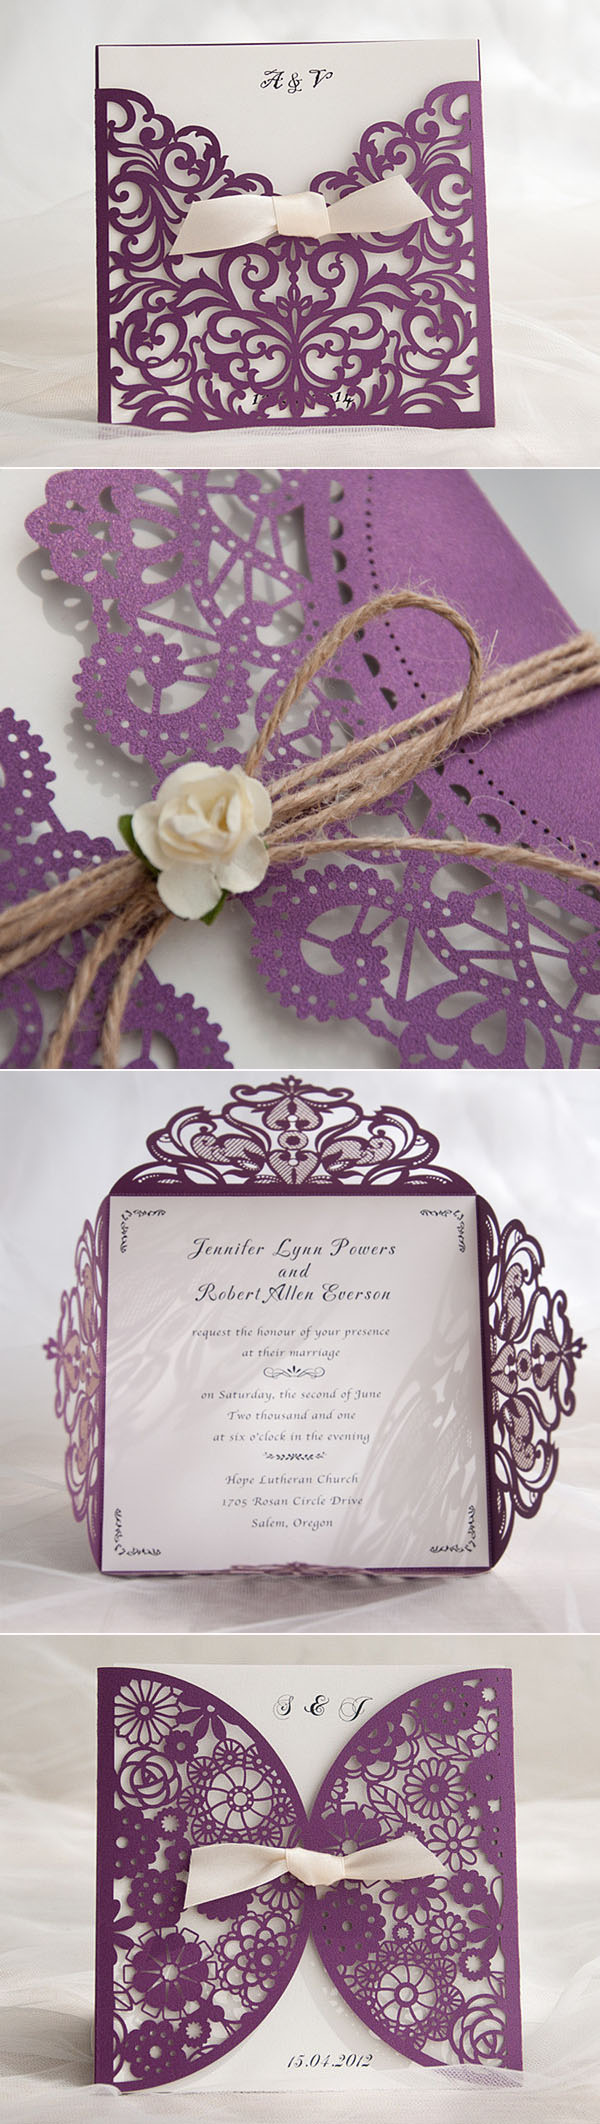 10 hottest wedding invitation trends for 2016 for Laser cut wedding invitations in chennai